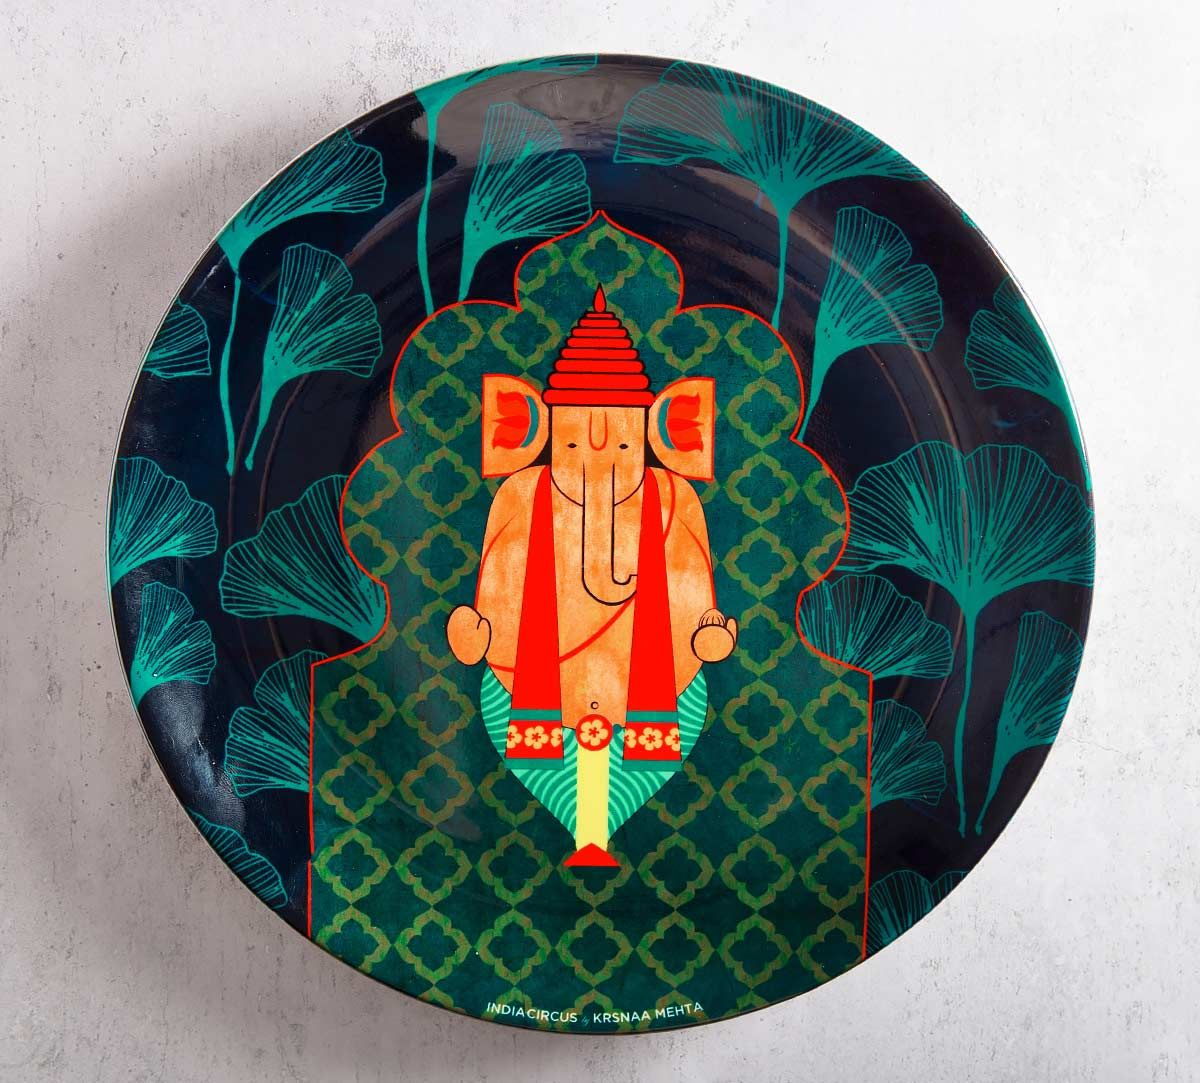 India Circus Ganeshas Riad Arch 10 inch Decorative and Snacks Platter